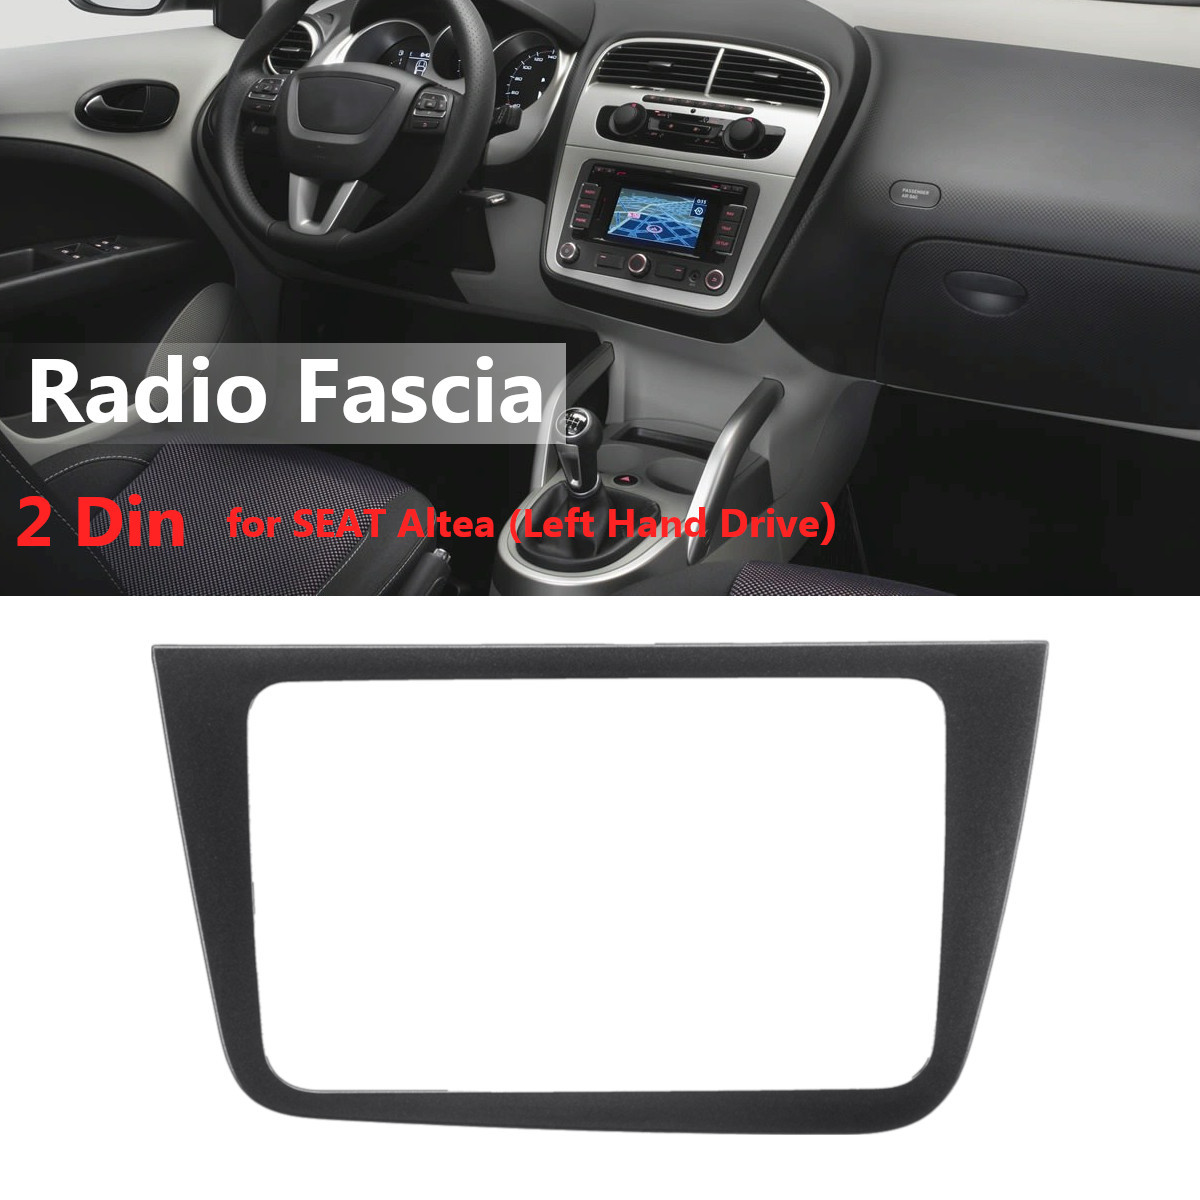 2 Din Car Stereo Radio Fascia Panel Plate Frame CD DVD Dashboard Audio Frame For SEAT Altea Left Hand Drive Interior Trim image